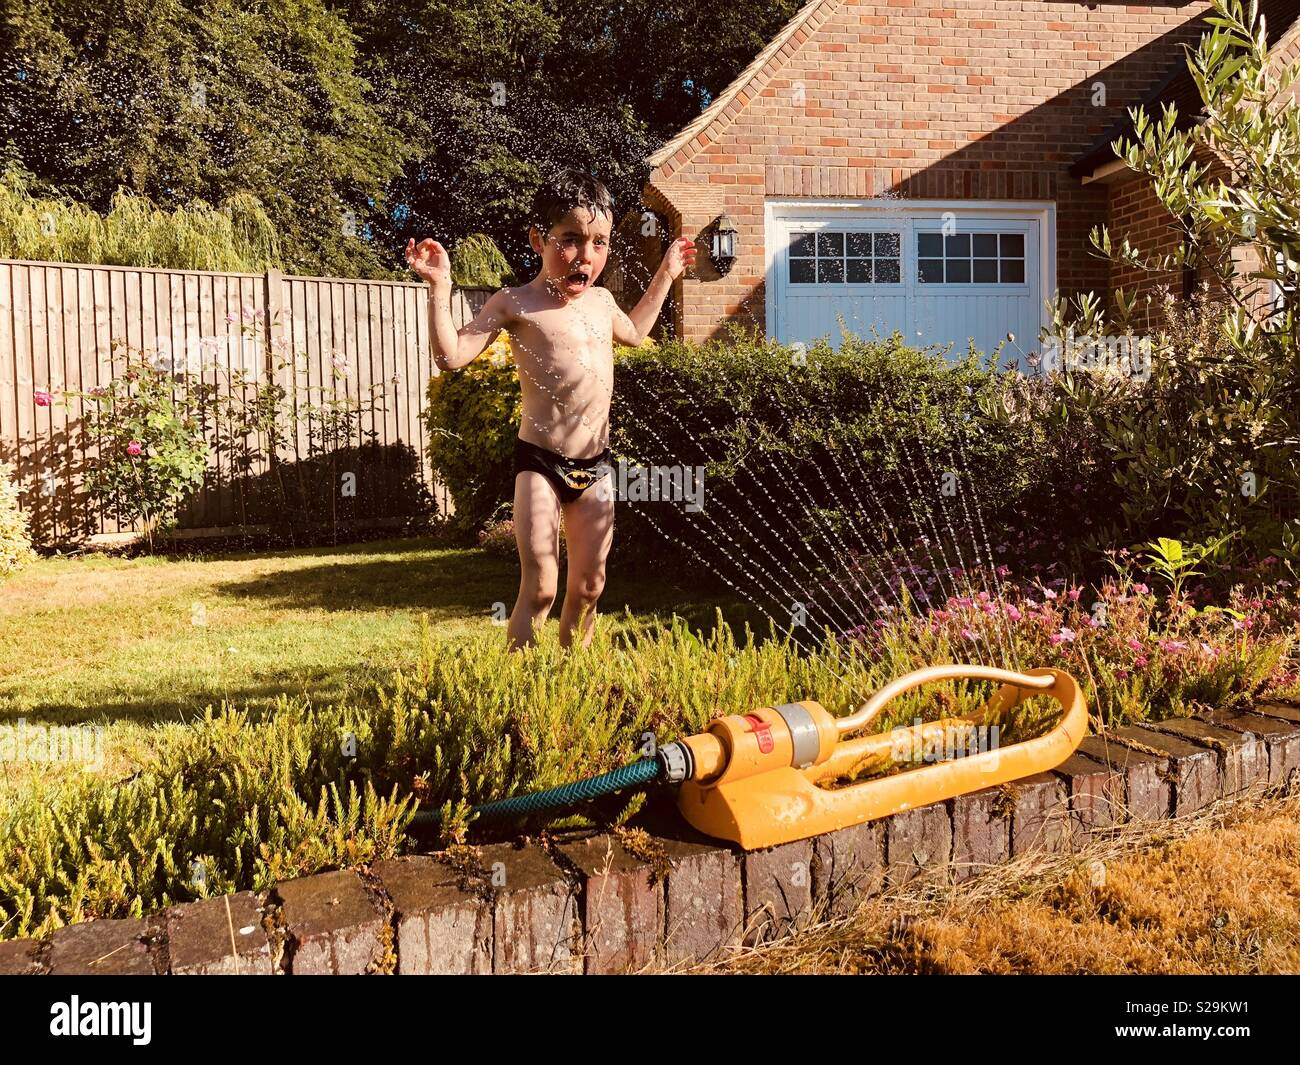 Boy sprayed by sprinkler in hot weather - Stock Image